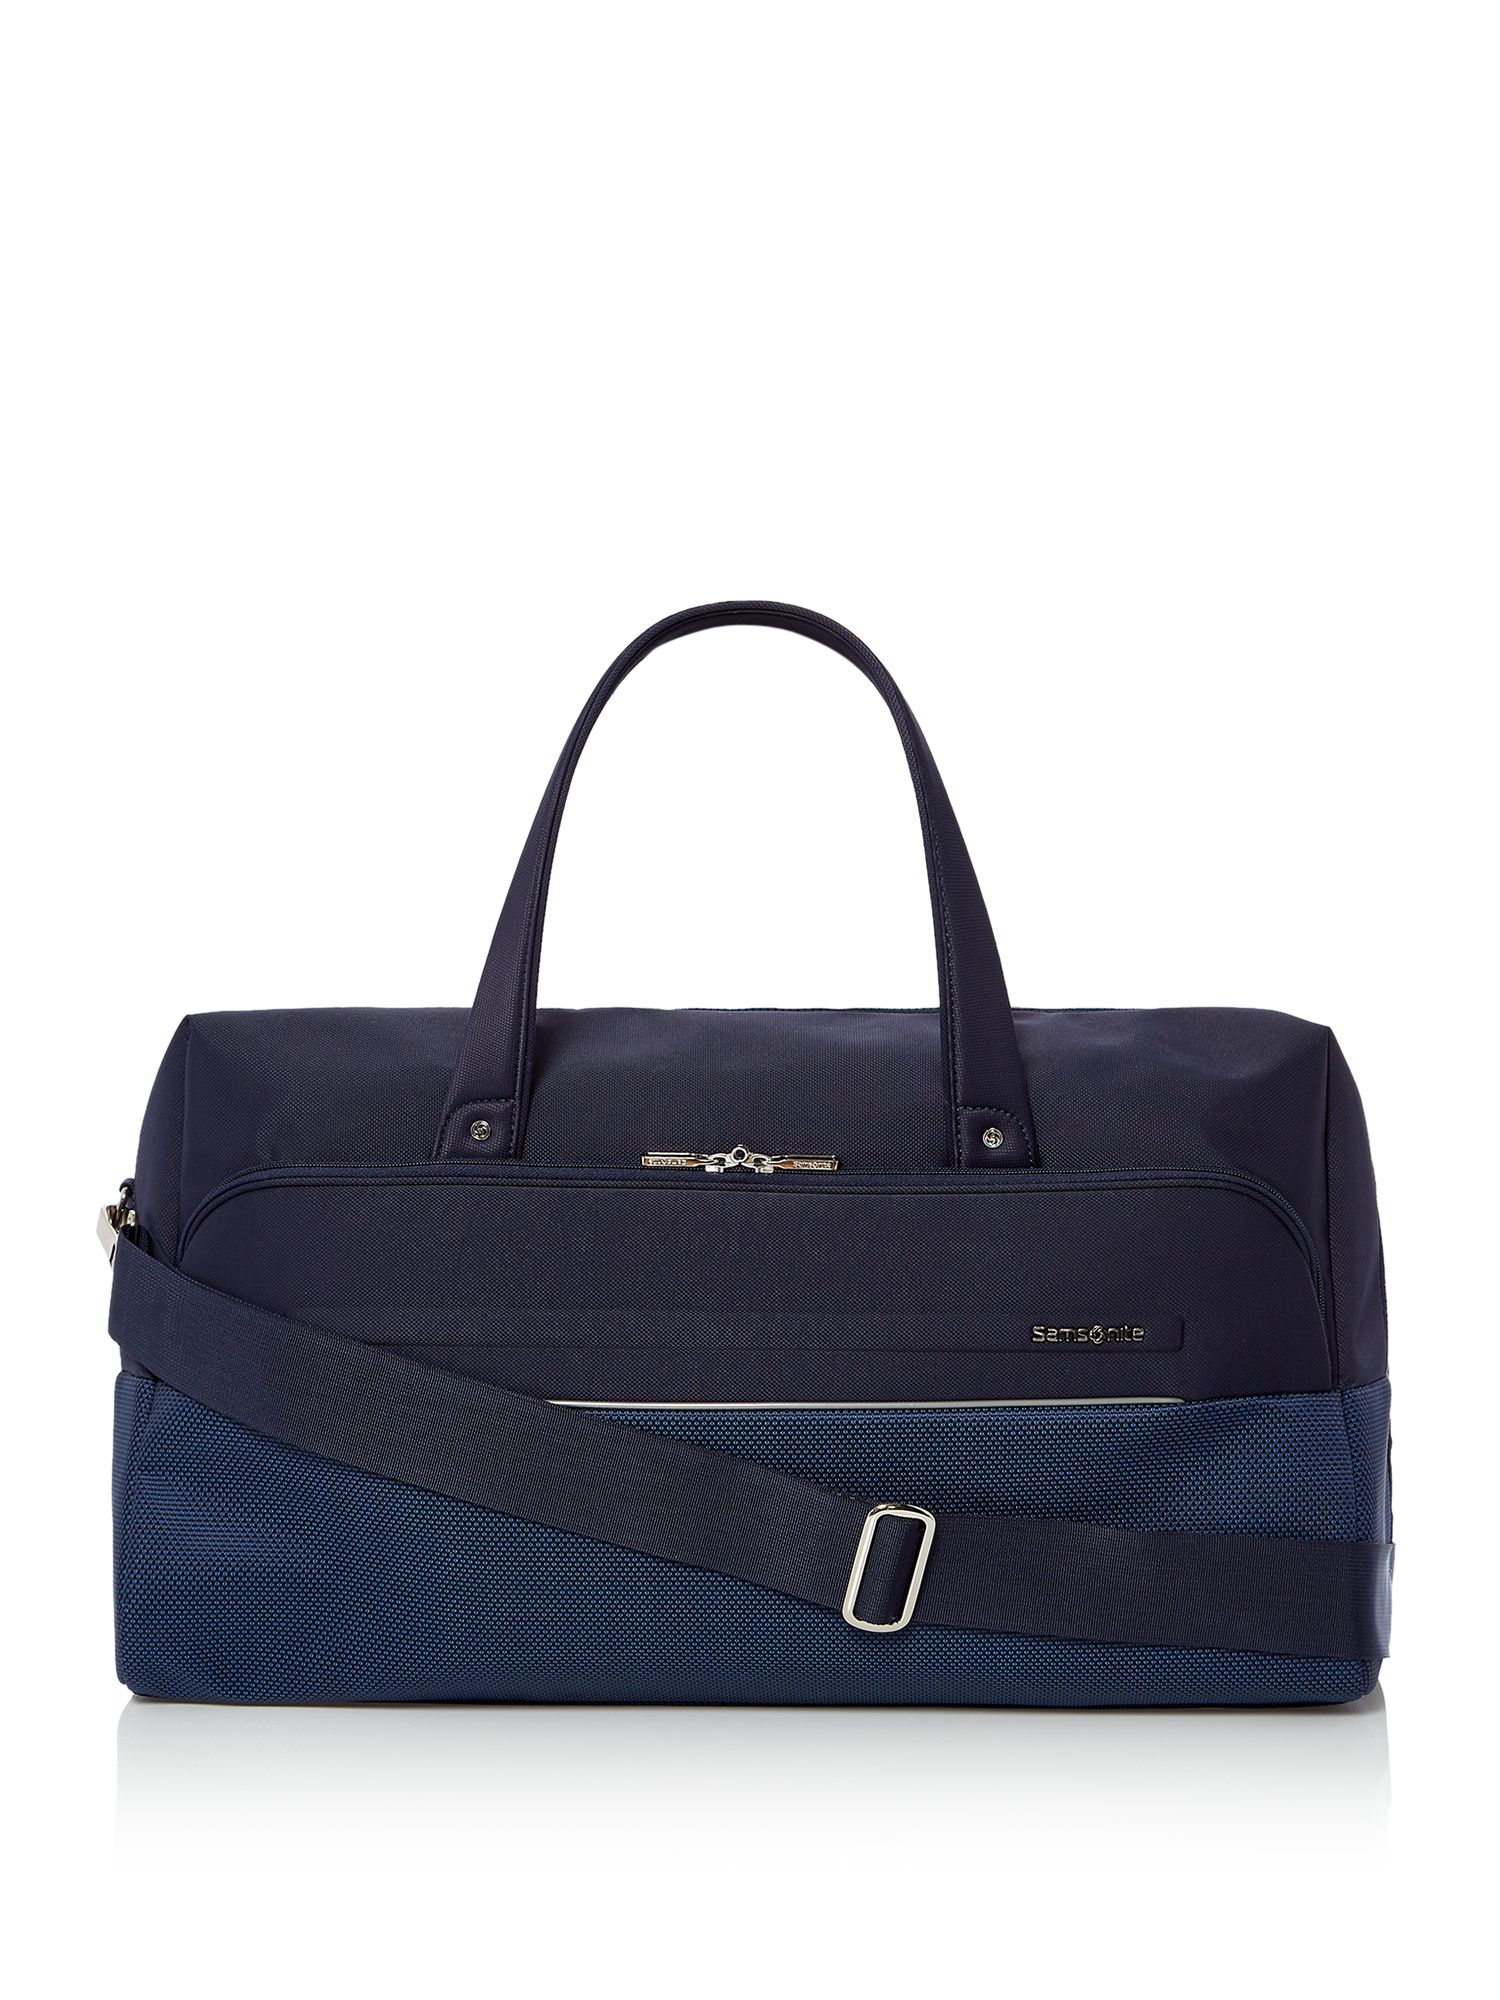 Samsonite B-Lite Icon Blue 55cm Duffle Bag, Blue